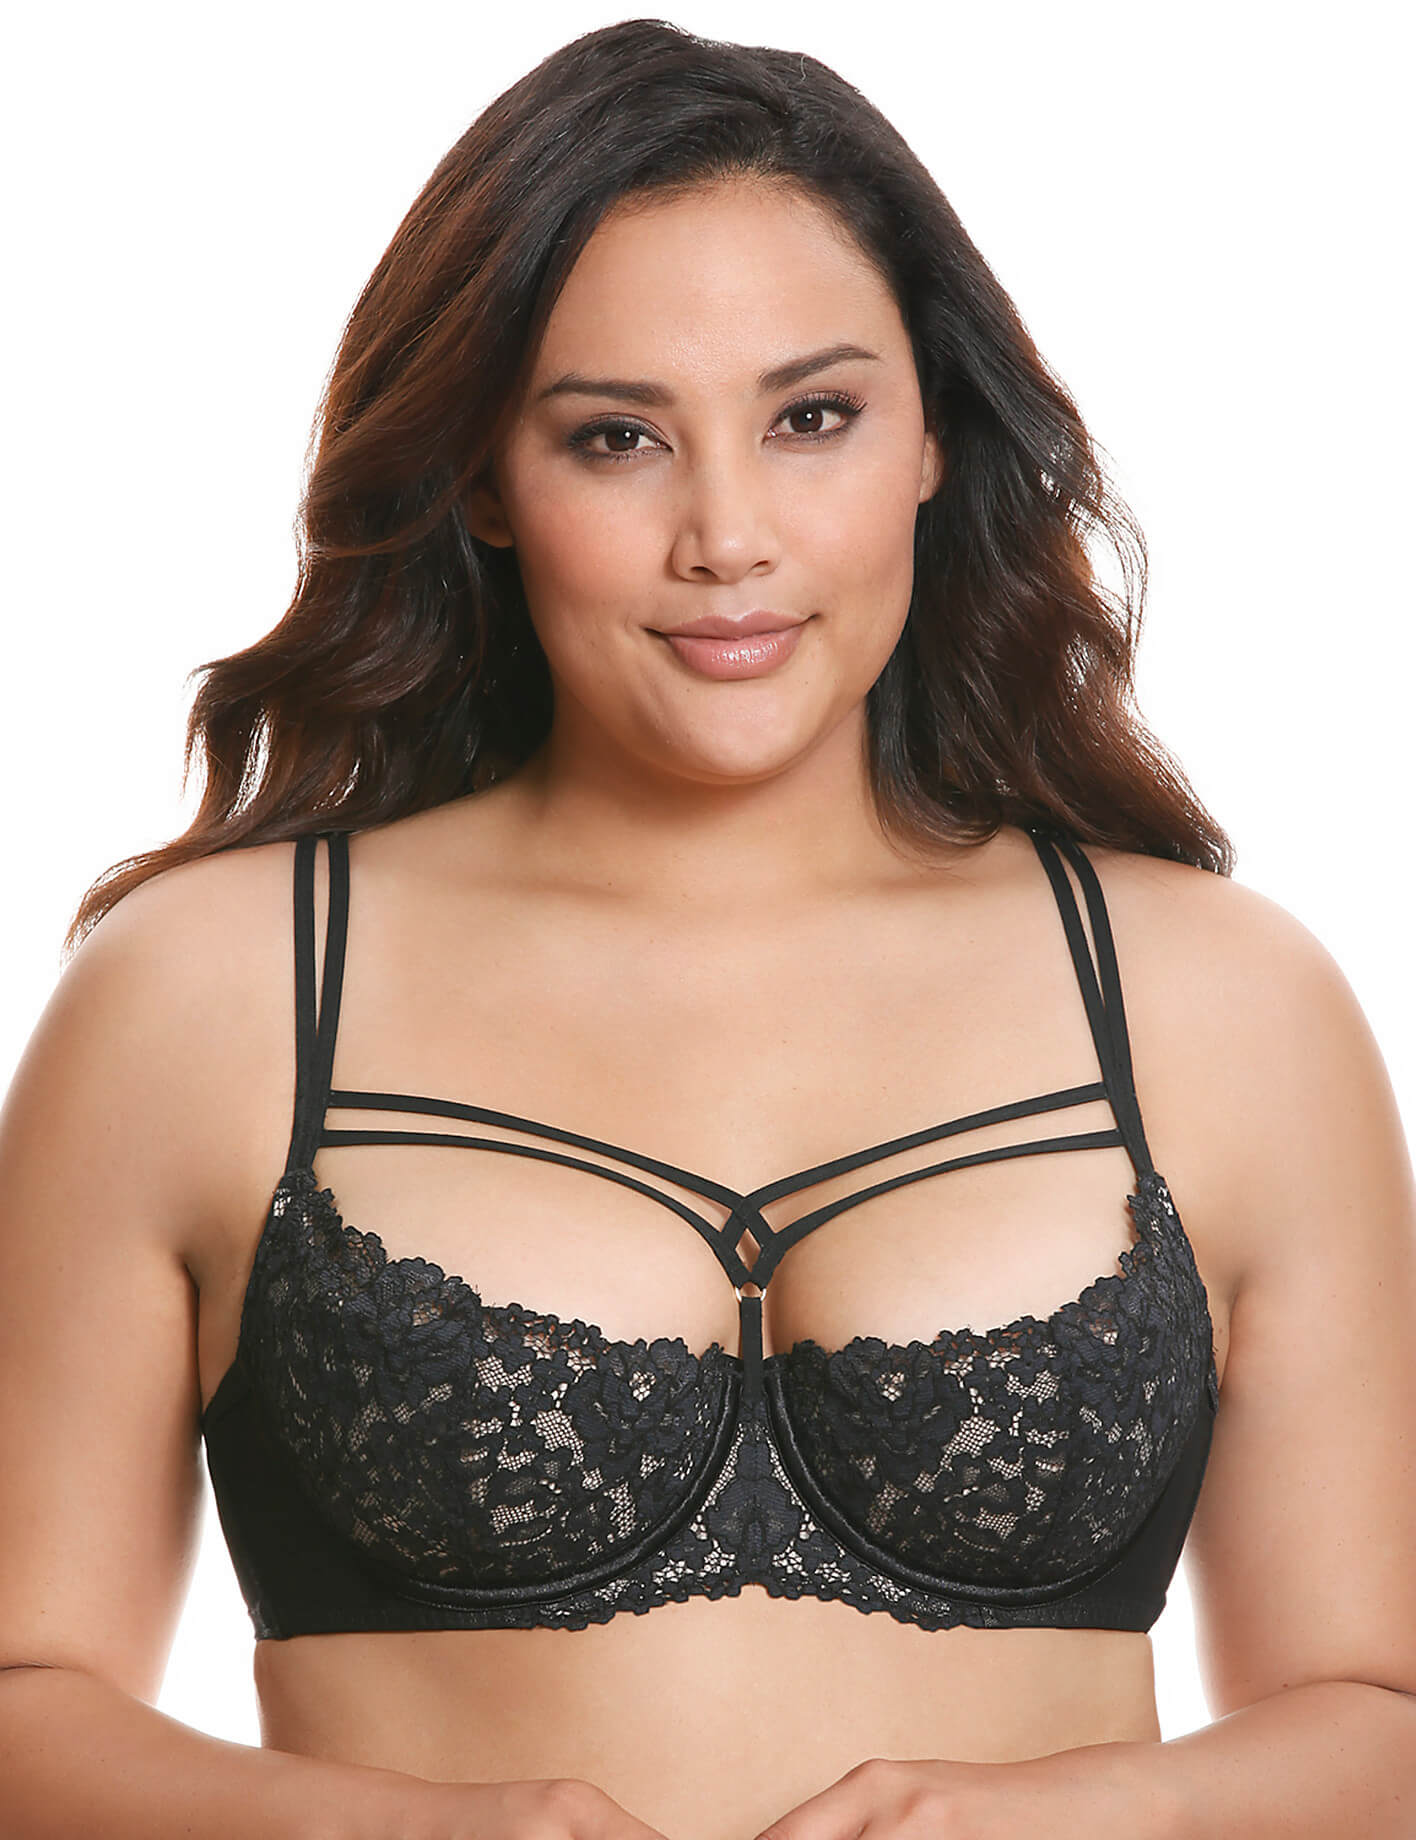 3c83a8e951 Lingerie of the Week  Lane Bryant Strappy Lace Balconette Bra